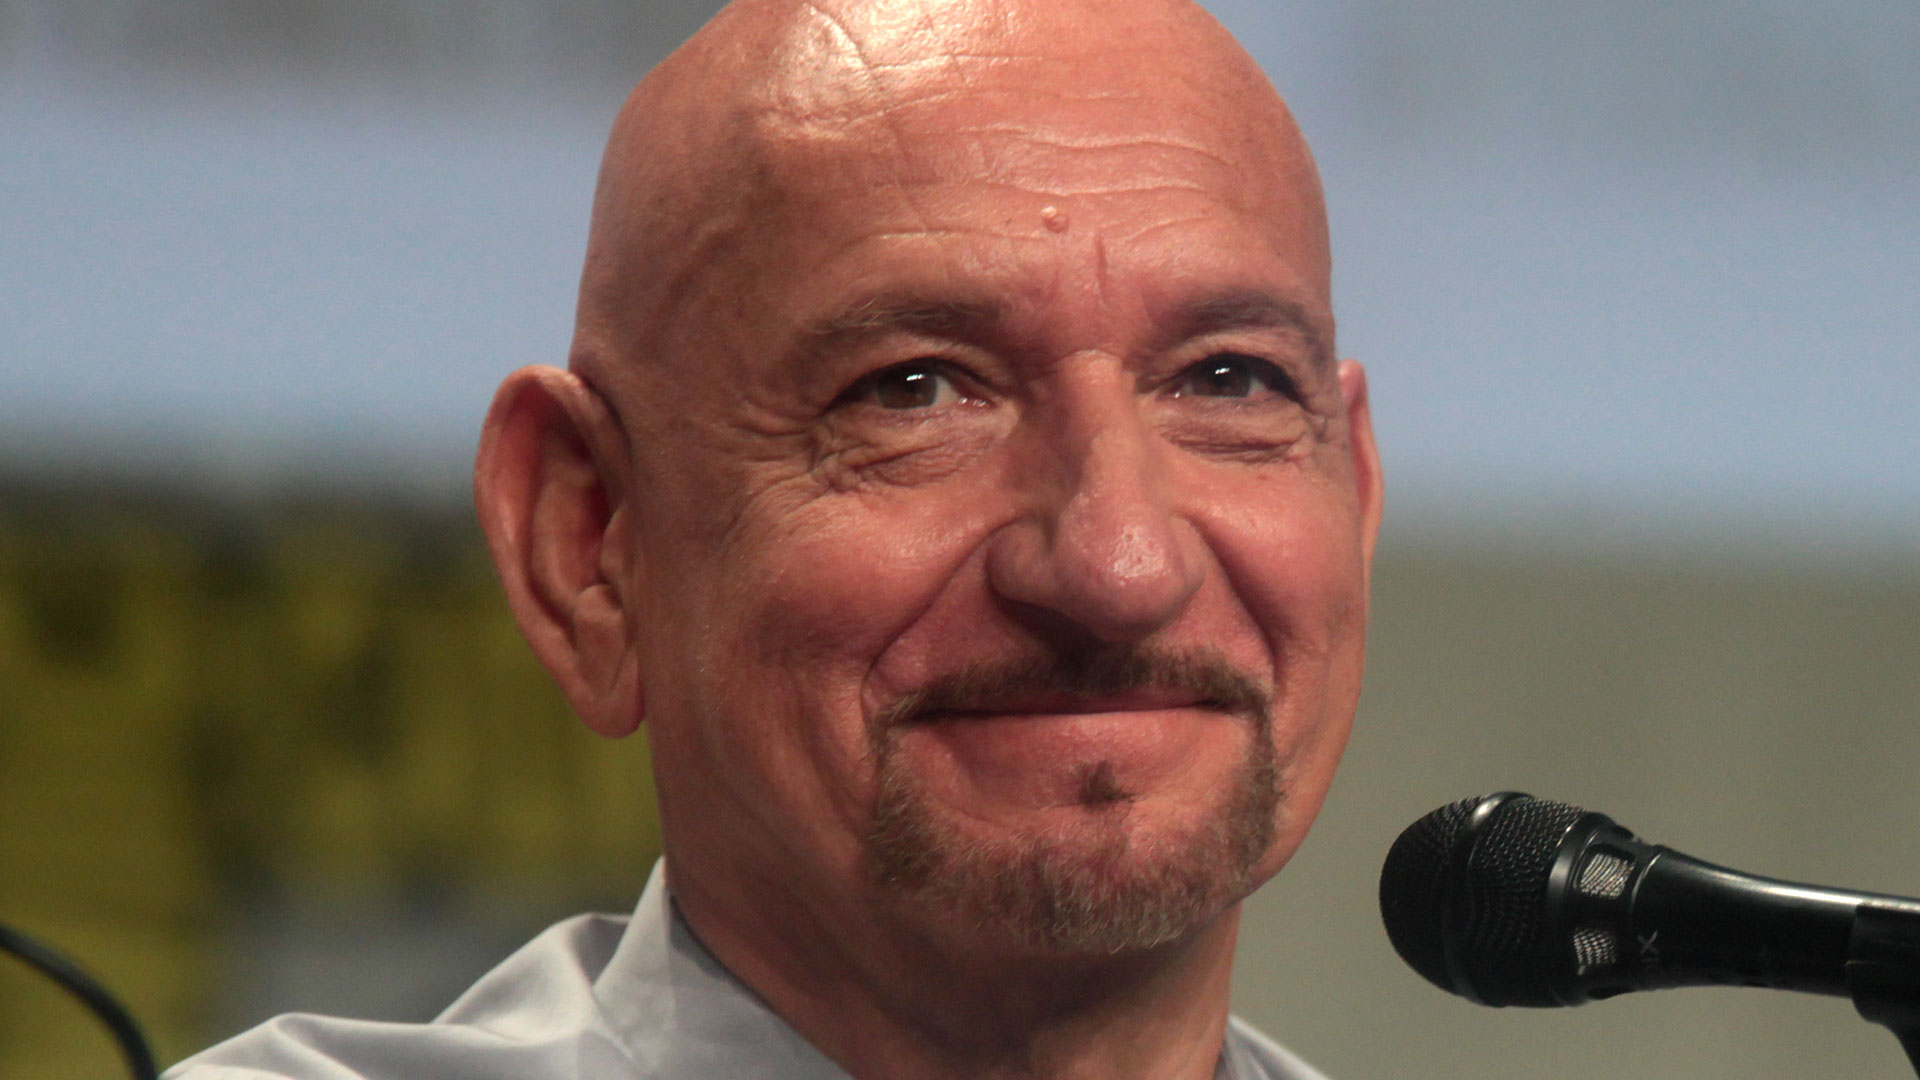 Sir Ben Kingsley won a career achievement award in the 1995 edition of Fantasporto